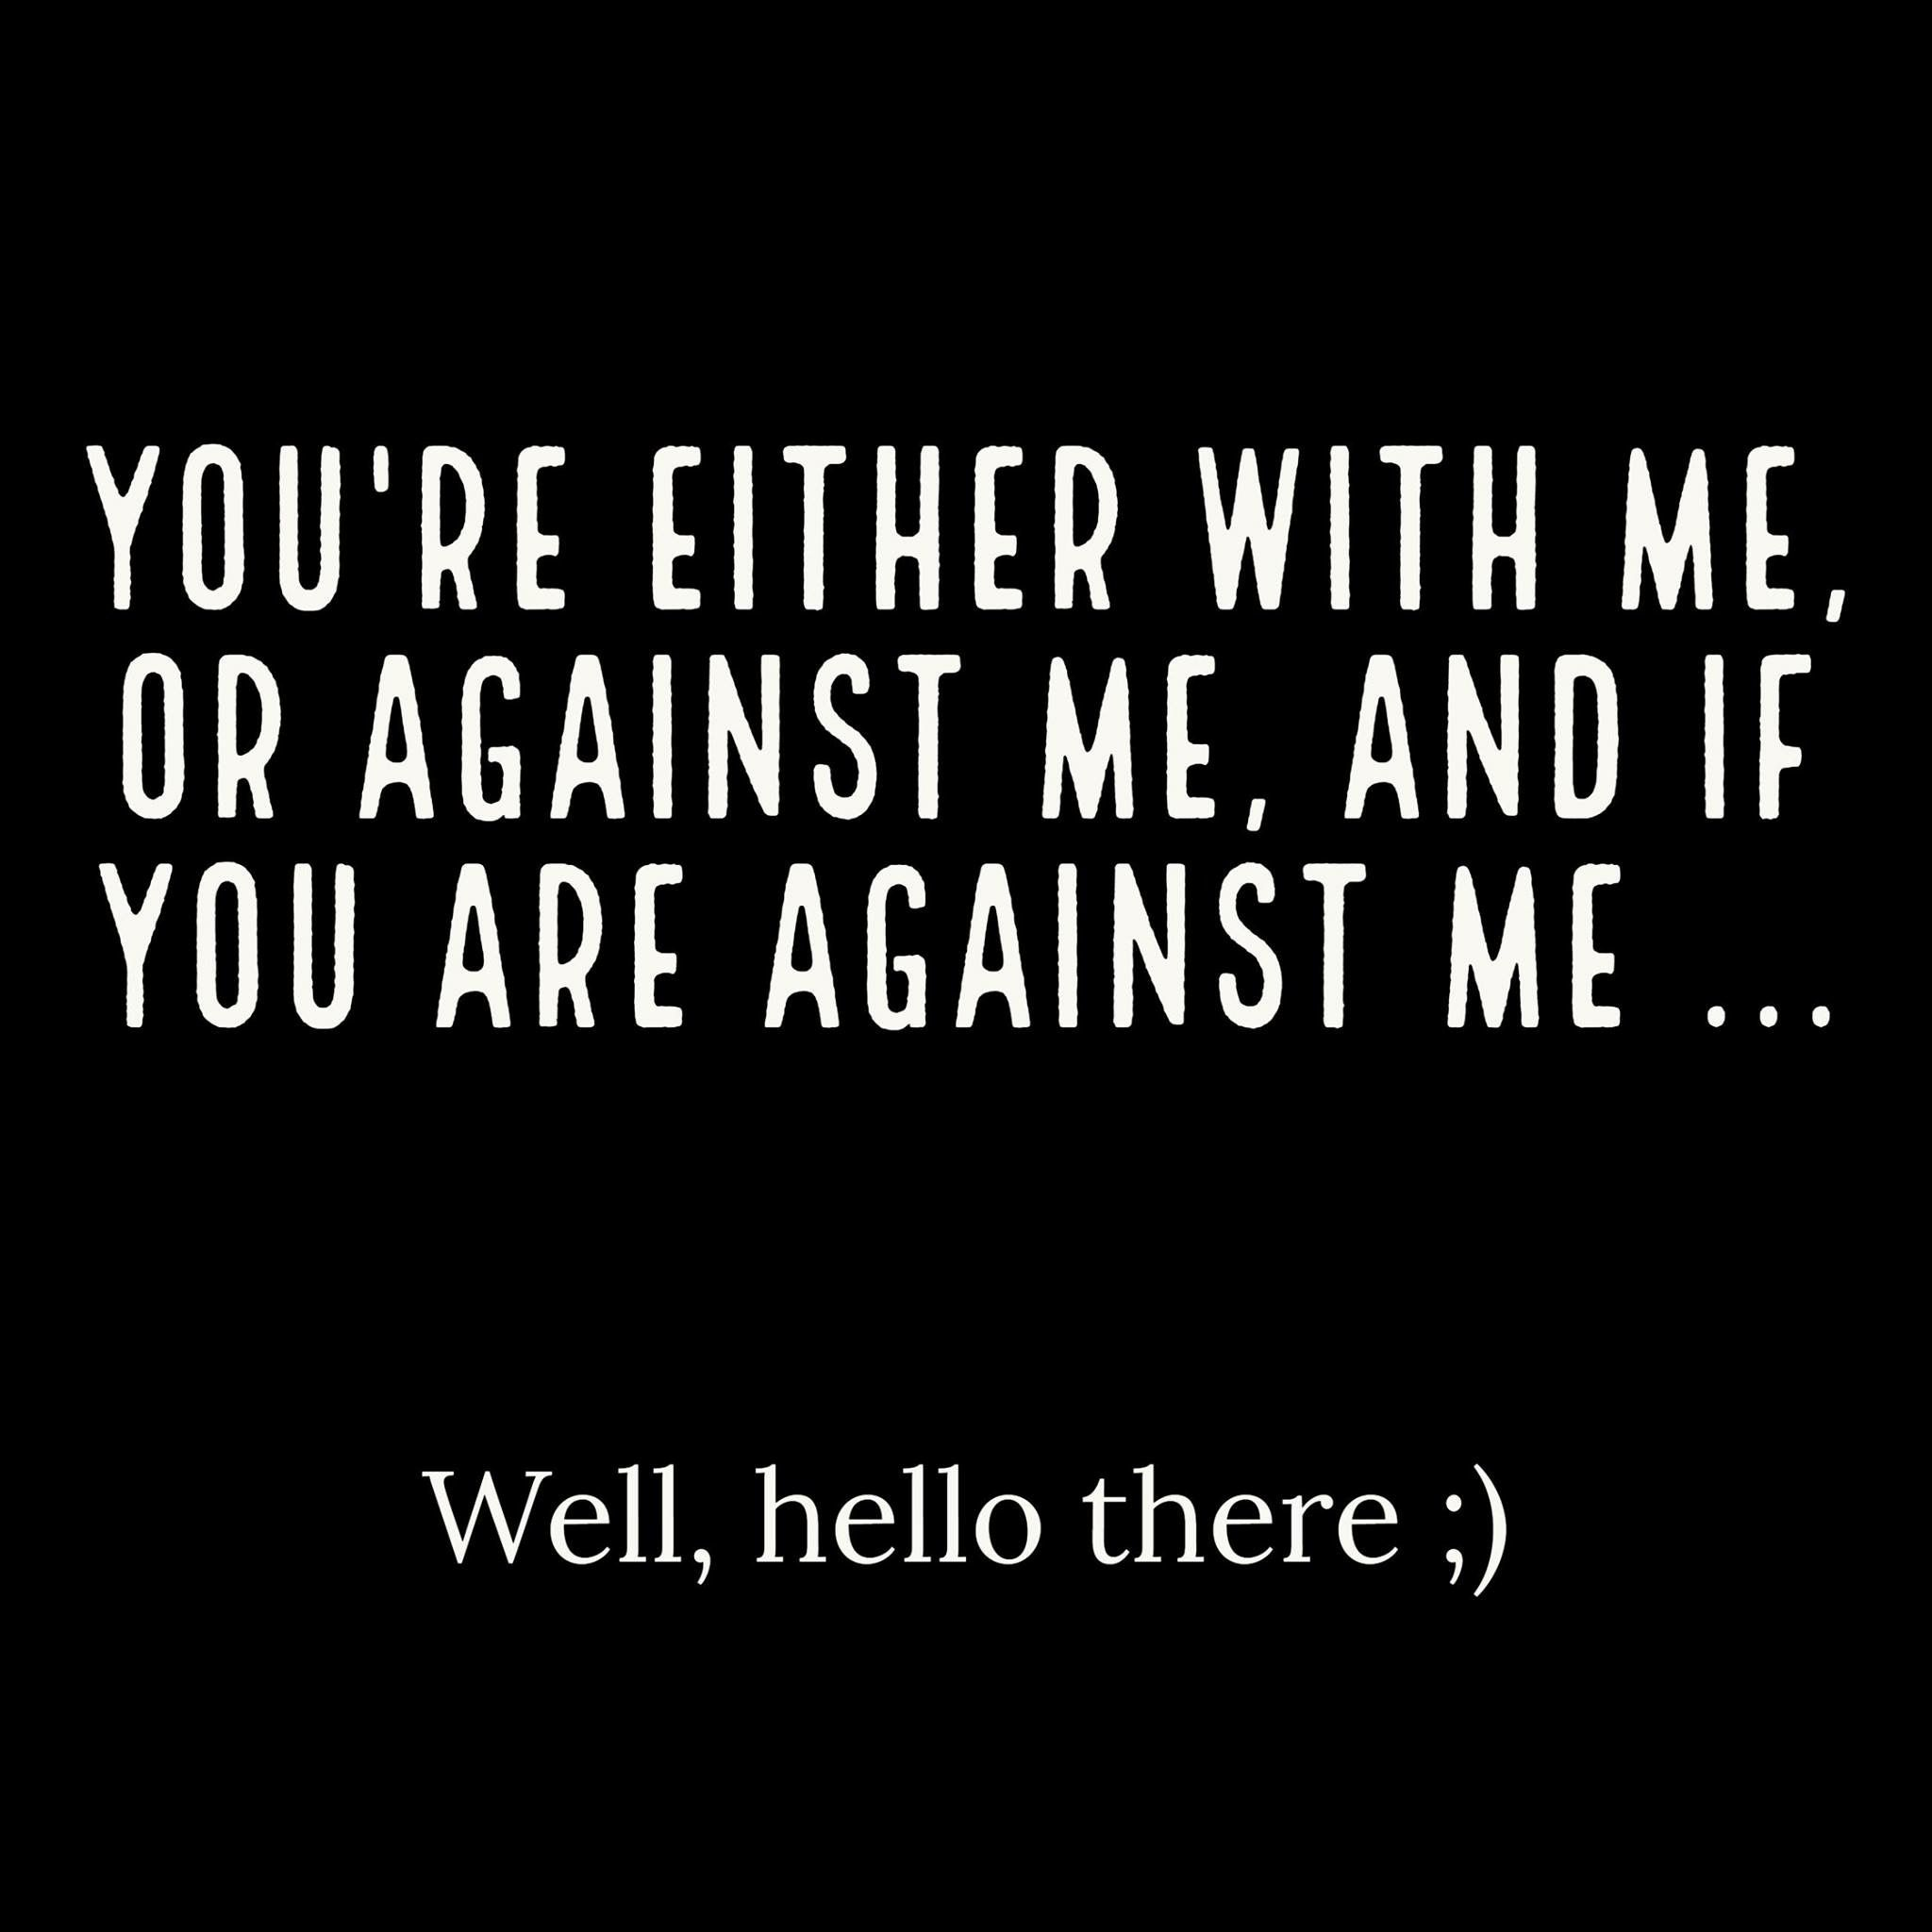 Yup I Want You With Me And Against Me Well Hello There Funny Quotes Sarcasm Work Quotes Sarcasm Quotes